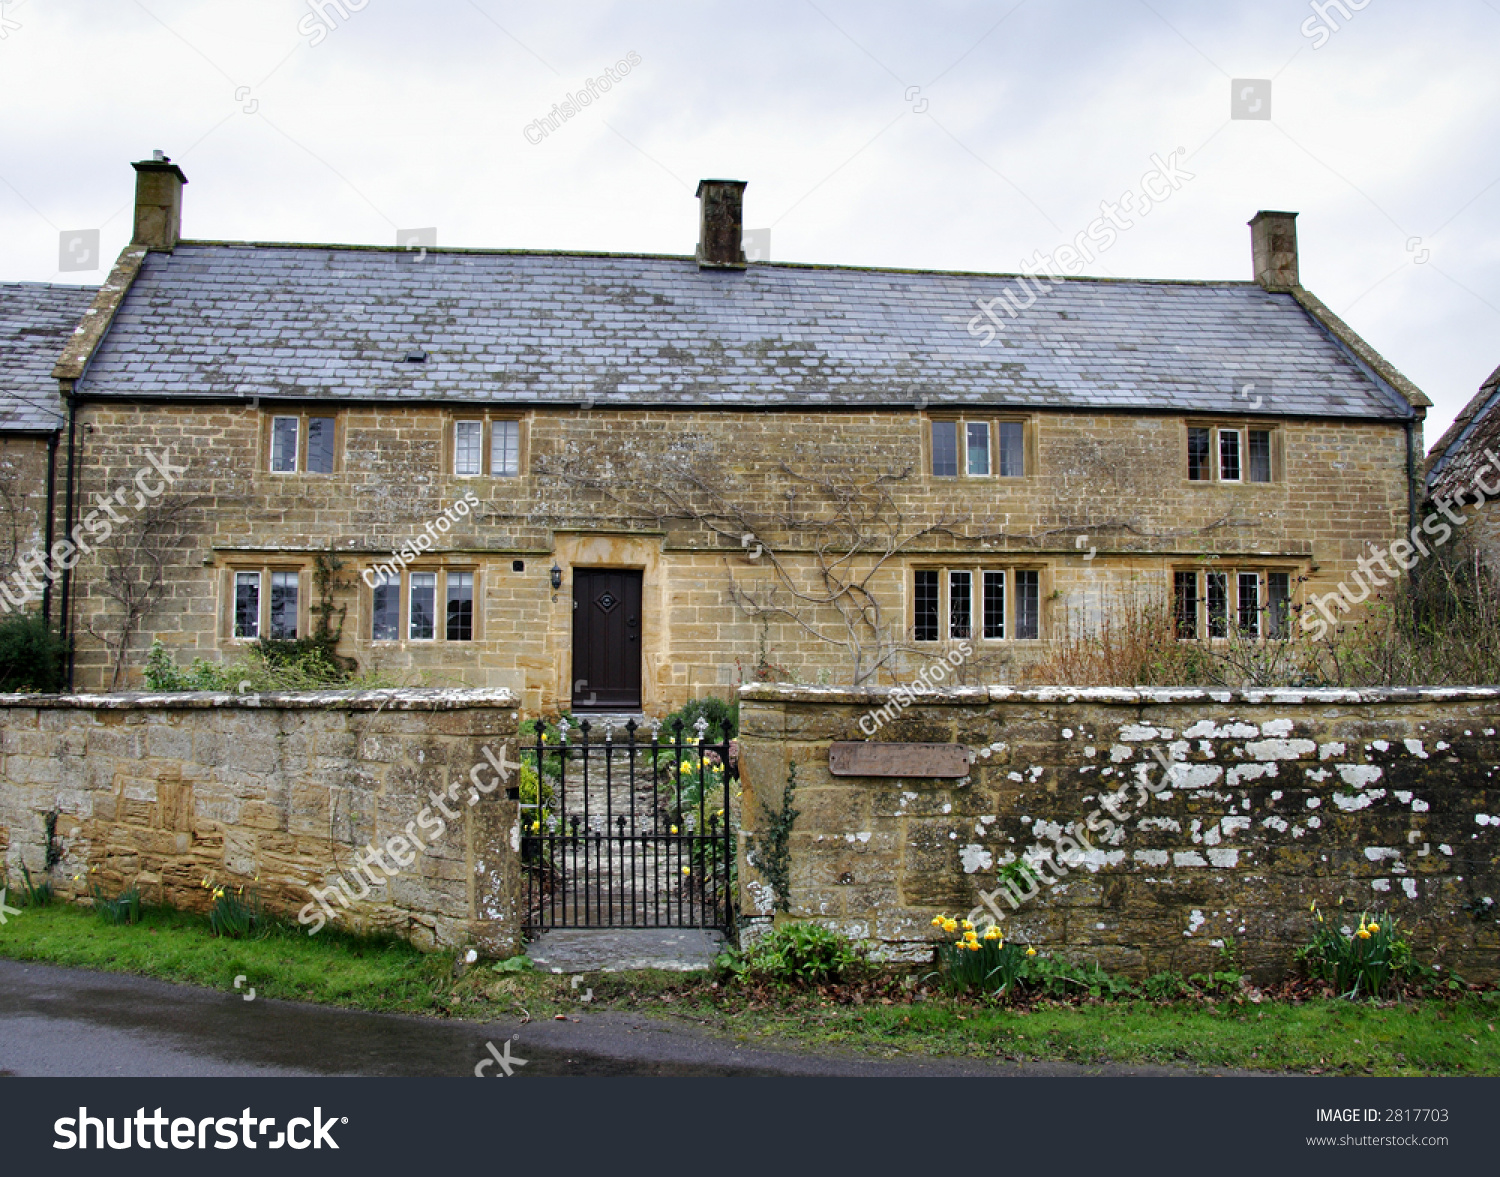 Natural Stone English Farmhouse In Rural Southern England